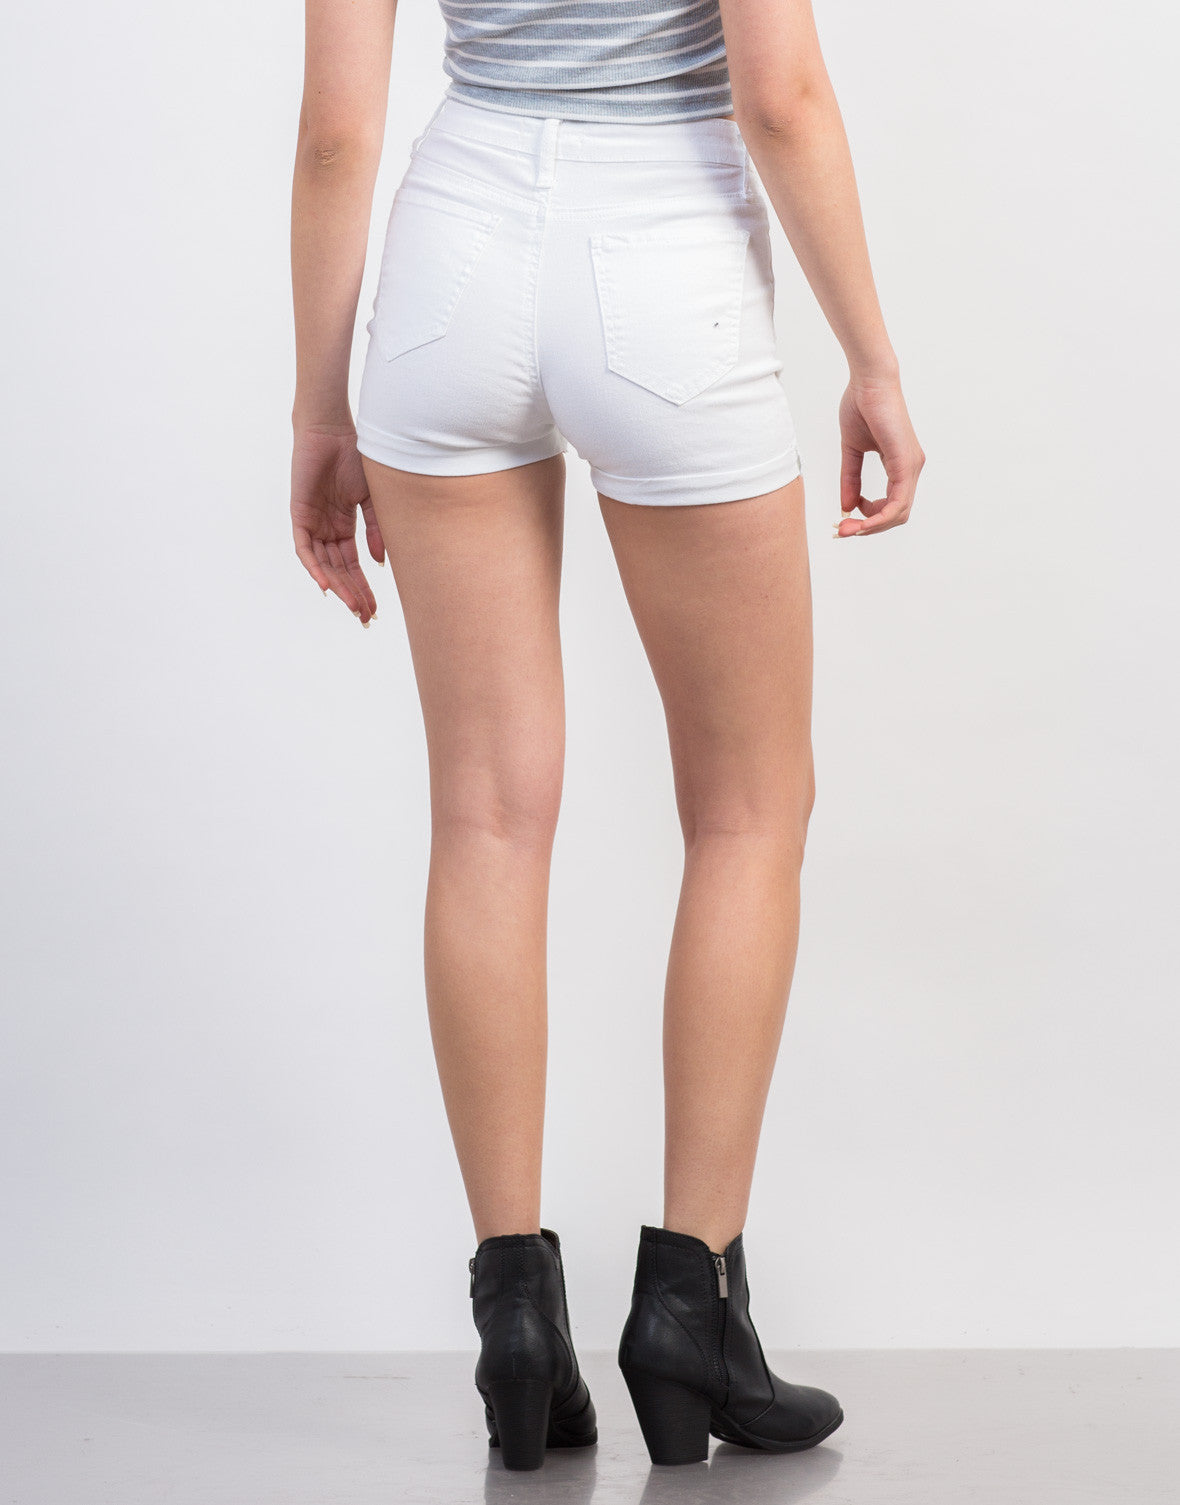 Cuffed High Waisted Denim Shorts - Sailor White Denim Shorts